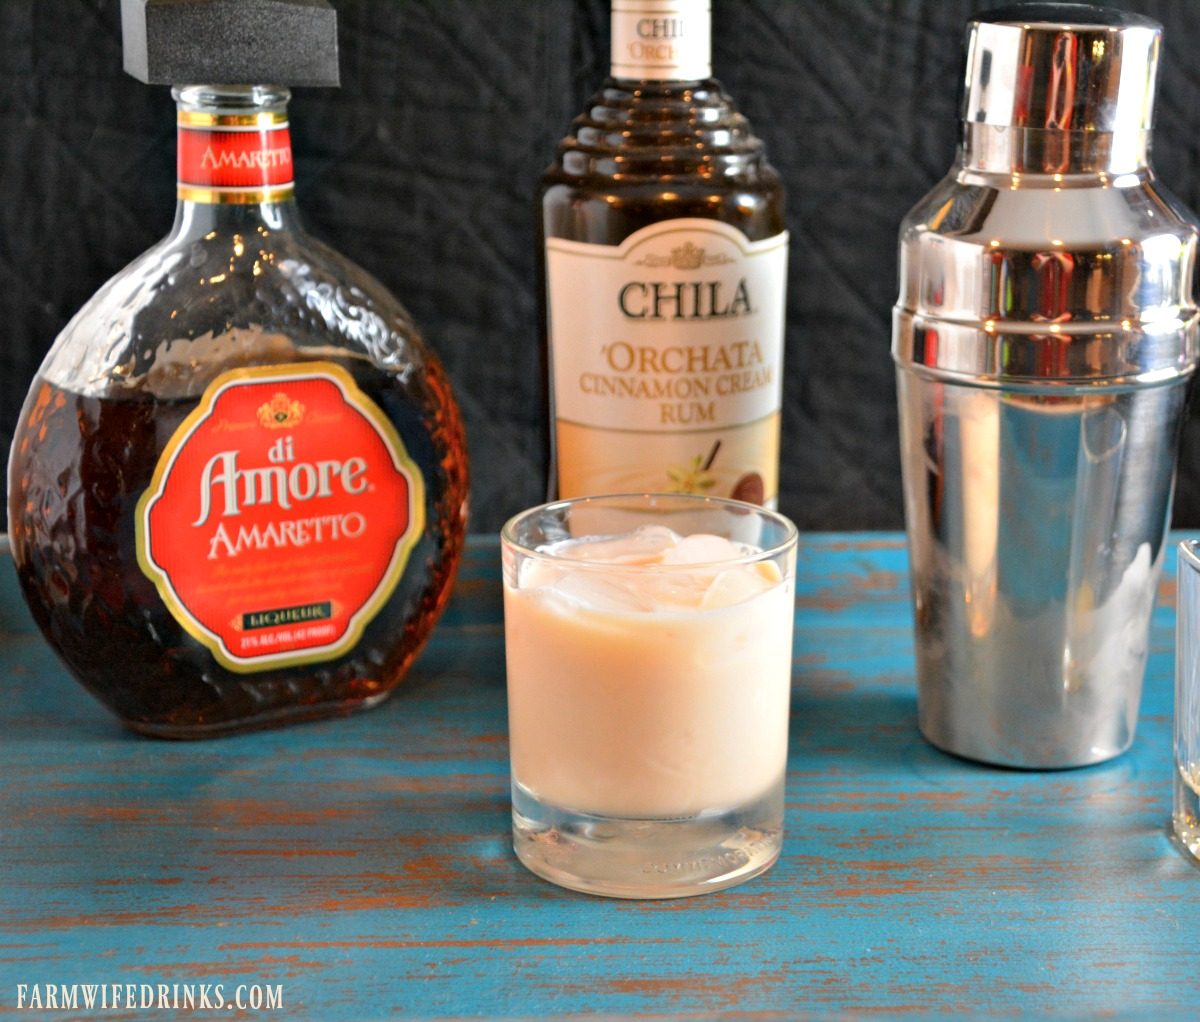 This sweet and creamy cocktail combine the cinnamon flavor from orchata with almond flavor from amaretto for a perfect cocktail.